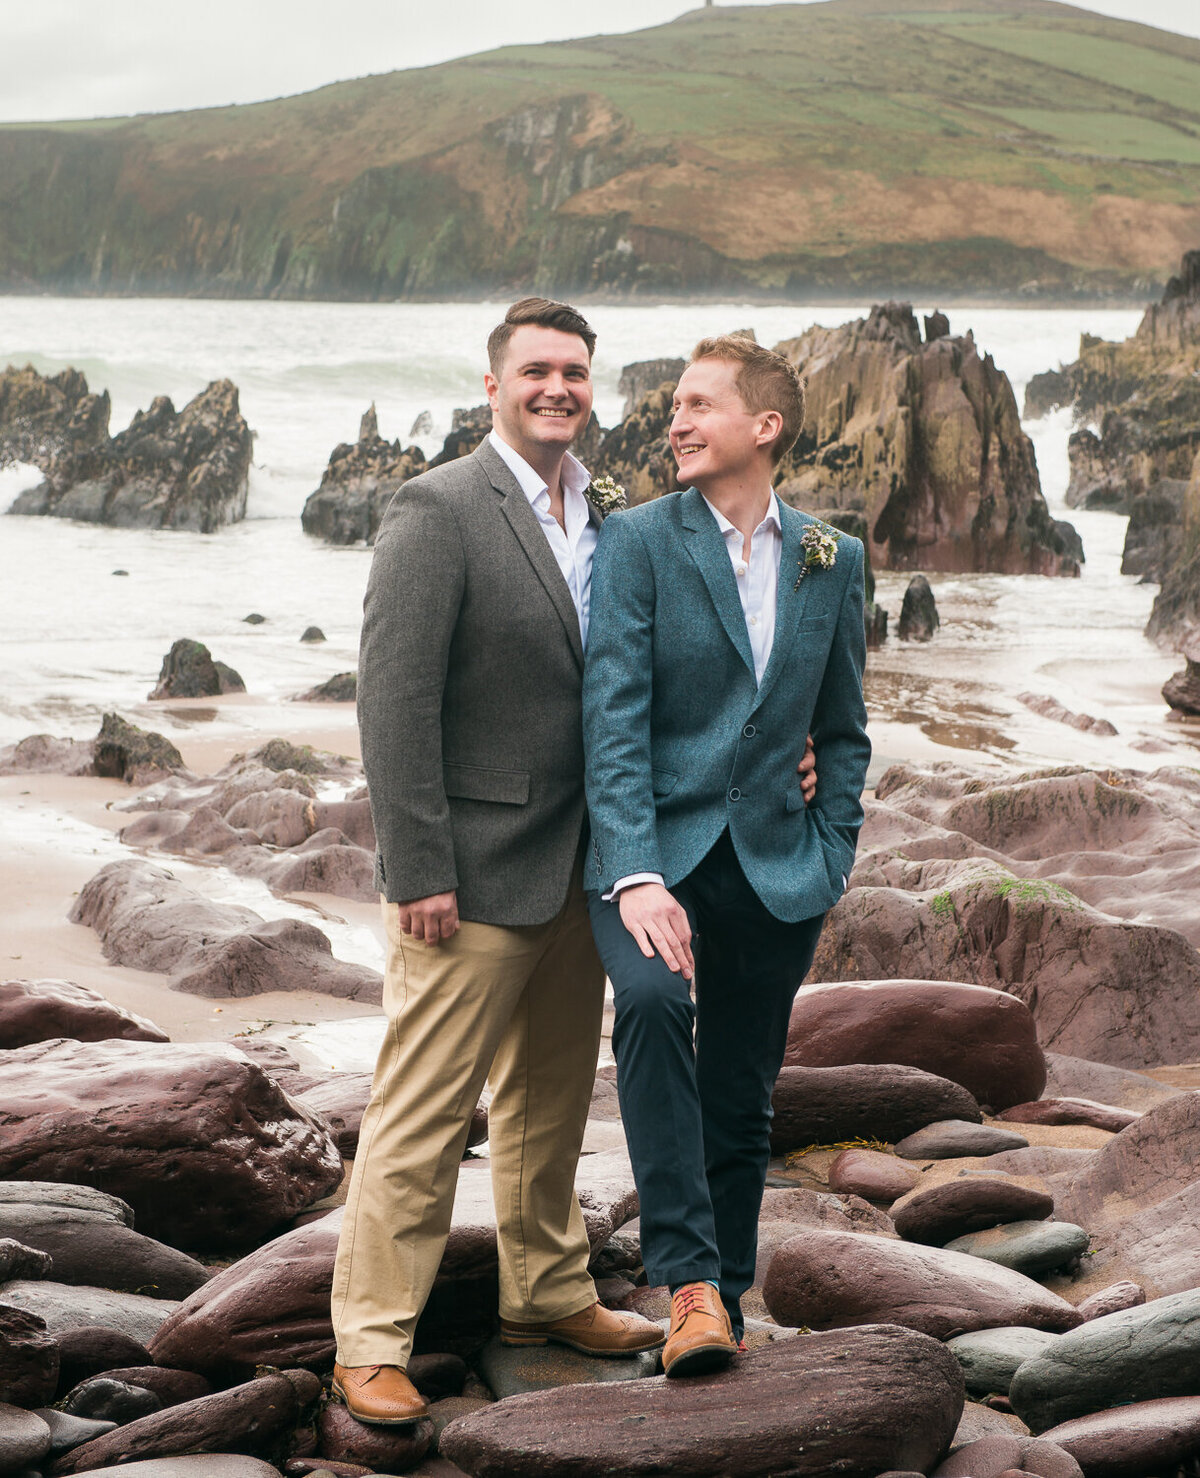 Two grooms standing on rocks looking at each other on beach